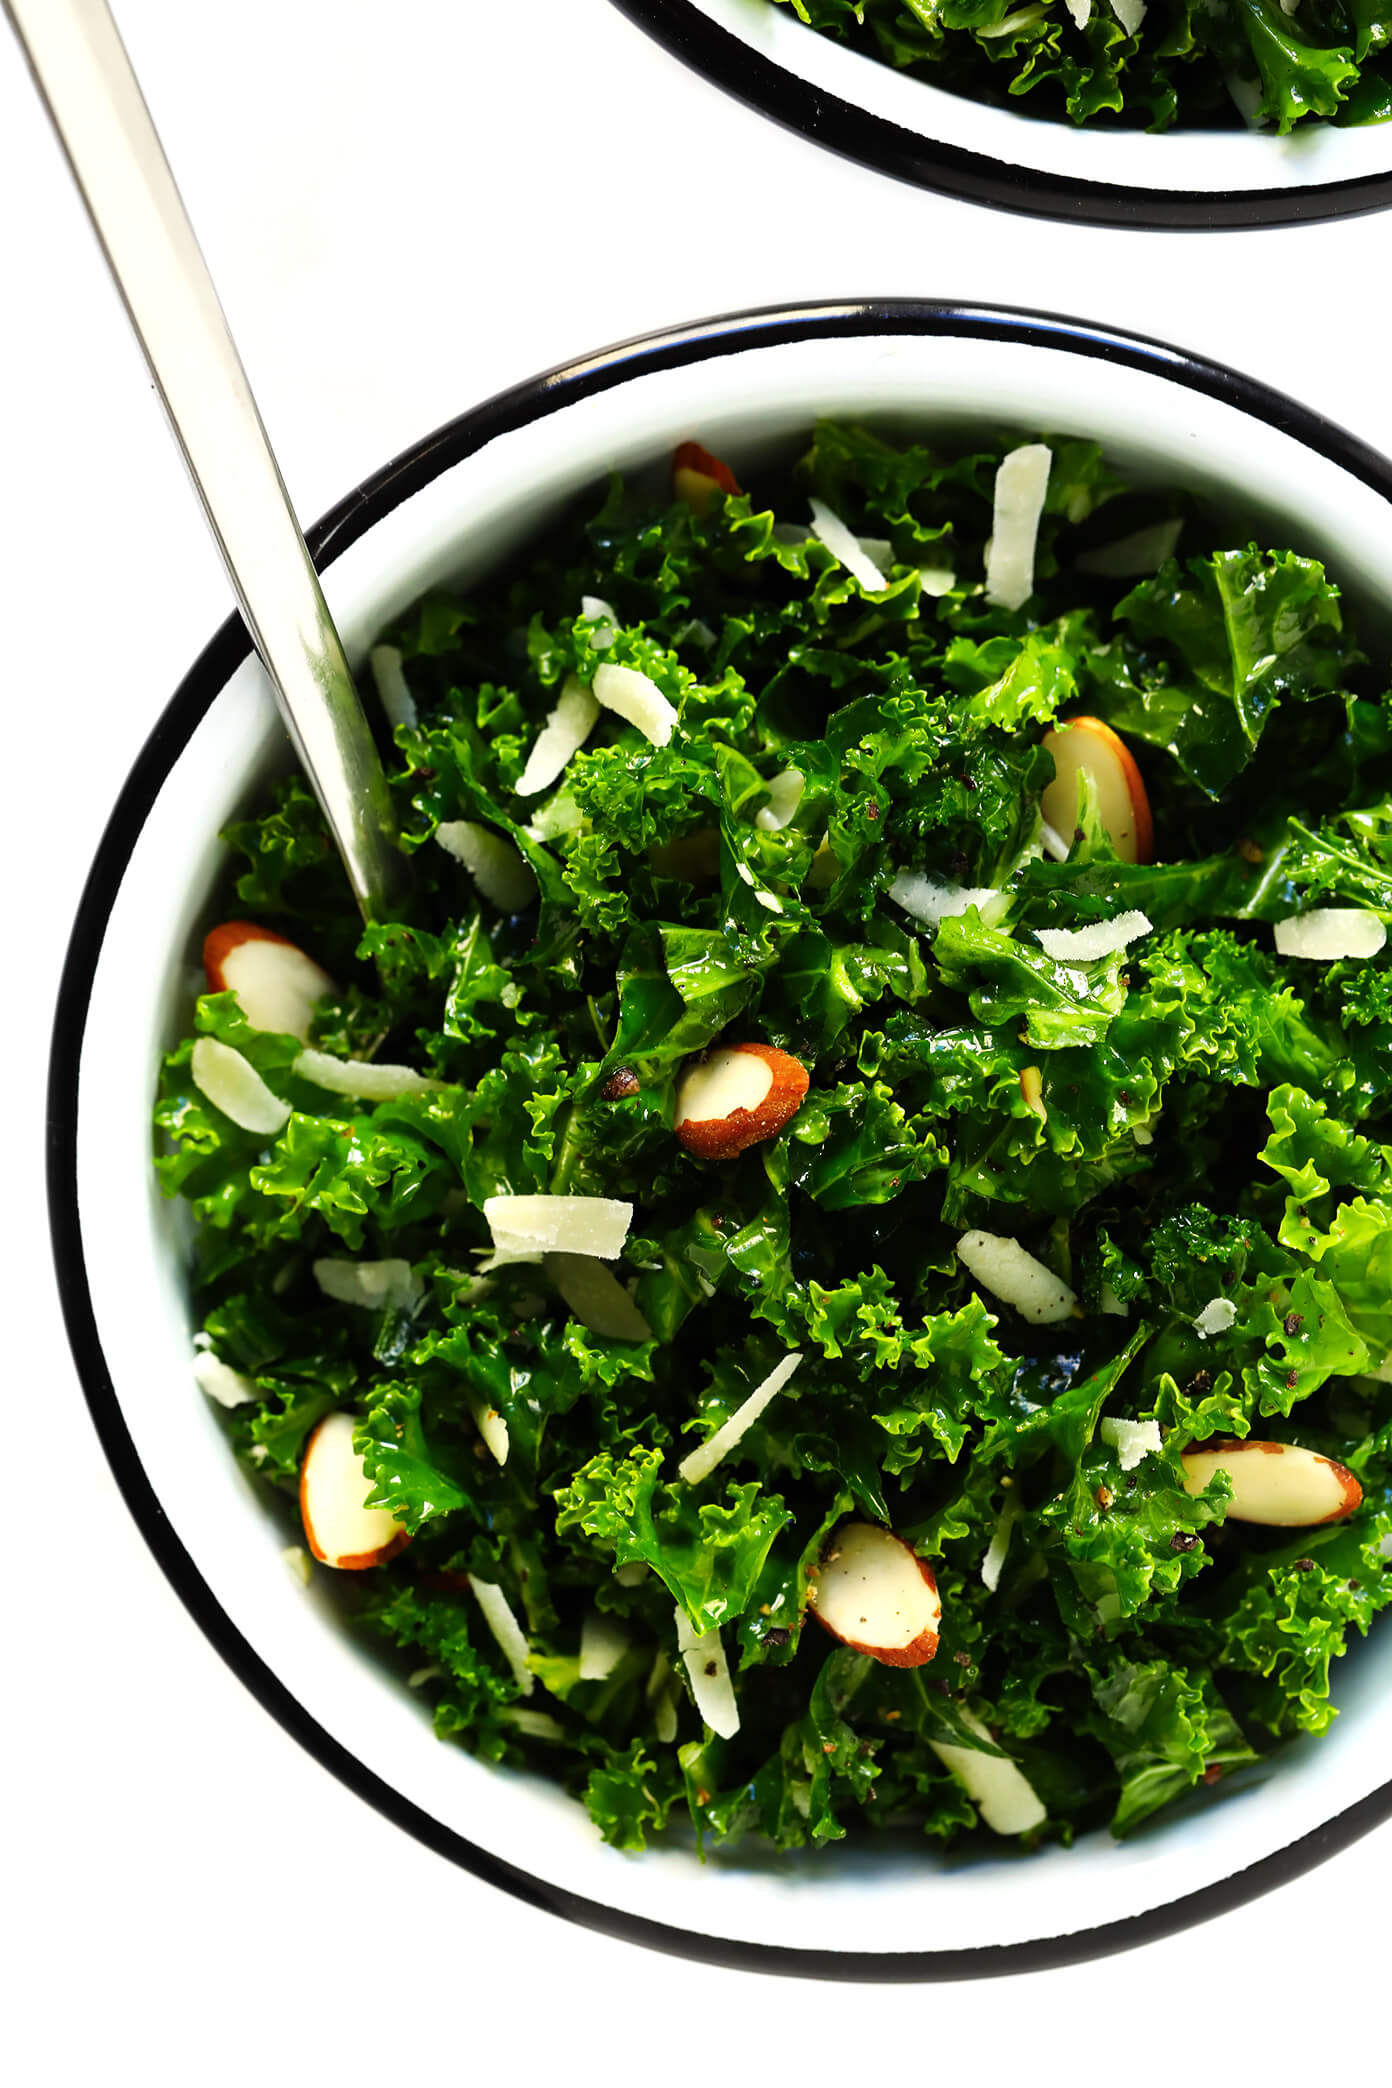 Kale Salad Recipe with Parmesan and Almonds